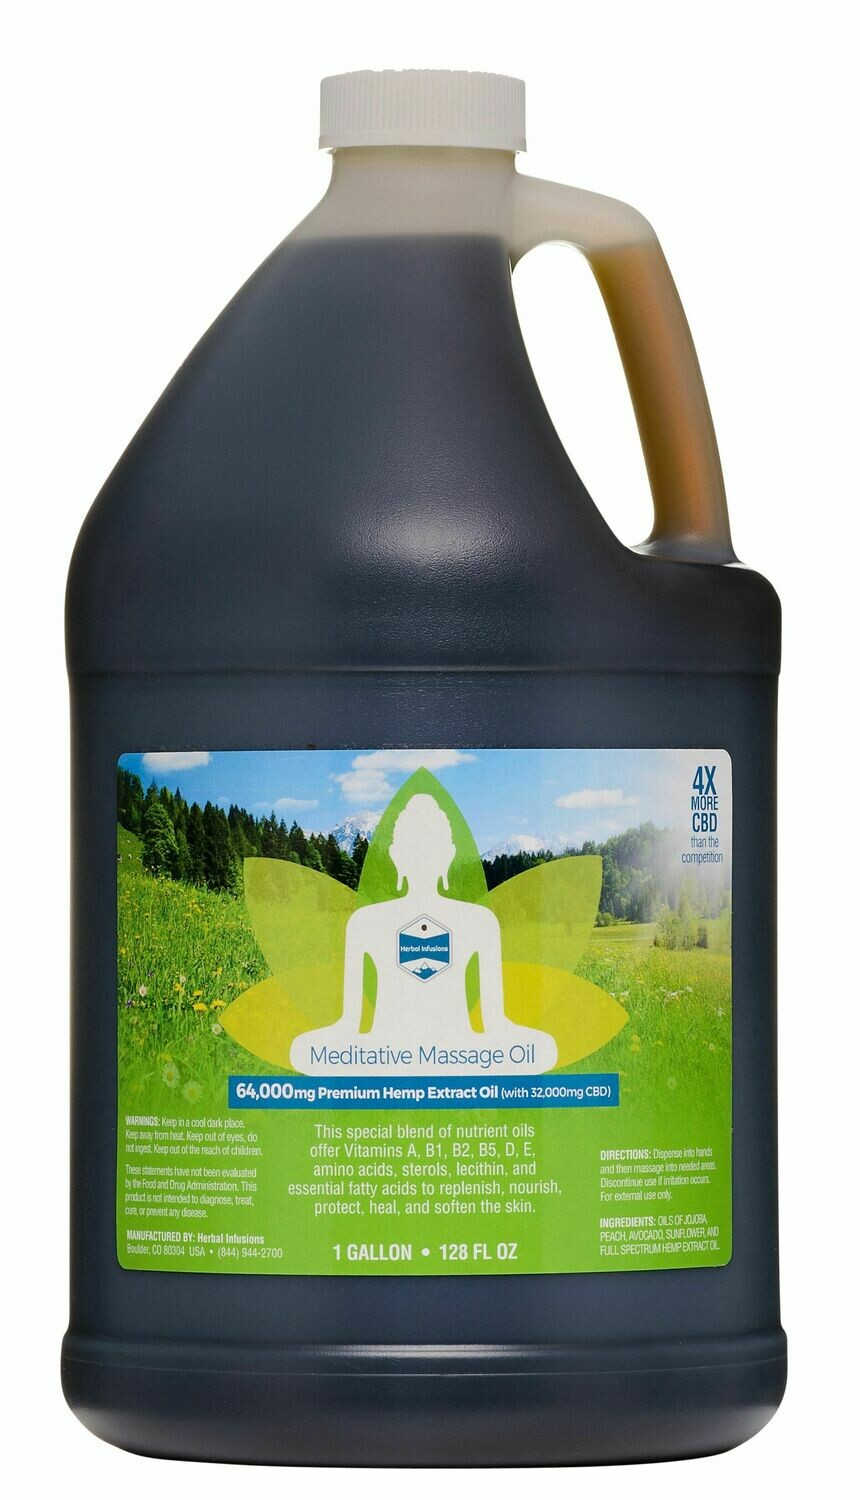 Meditative Massage Oil - GALLON